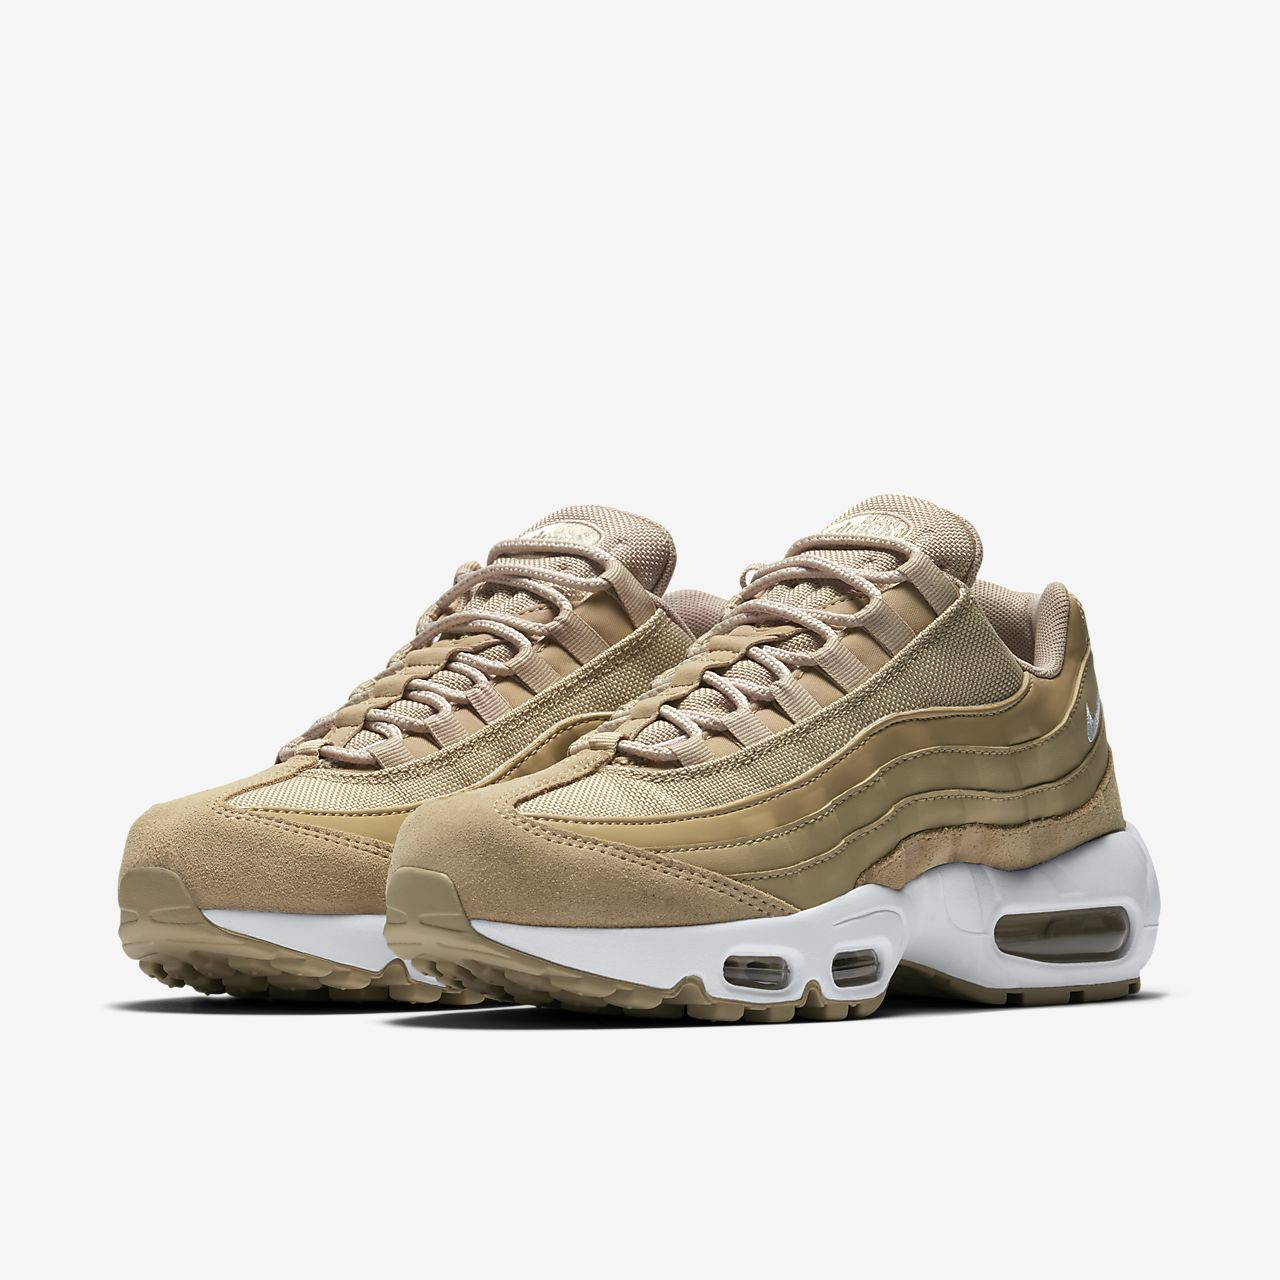 Super Specials OFFIZIELLER LADEN NIKE AIR MAX 95 OG HERREN